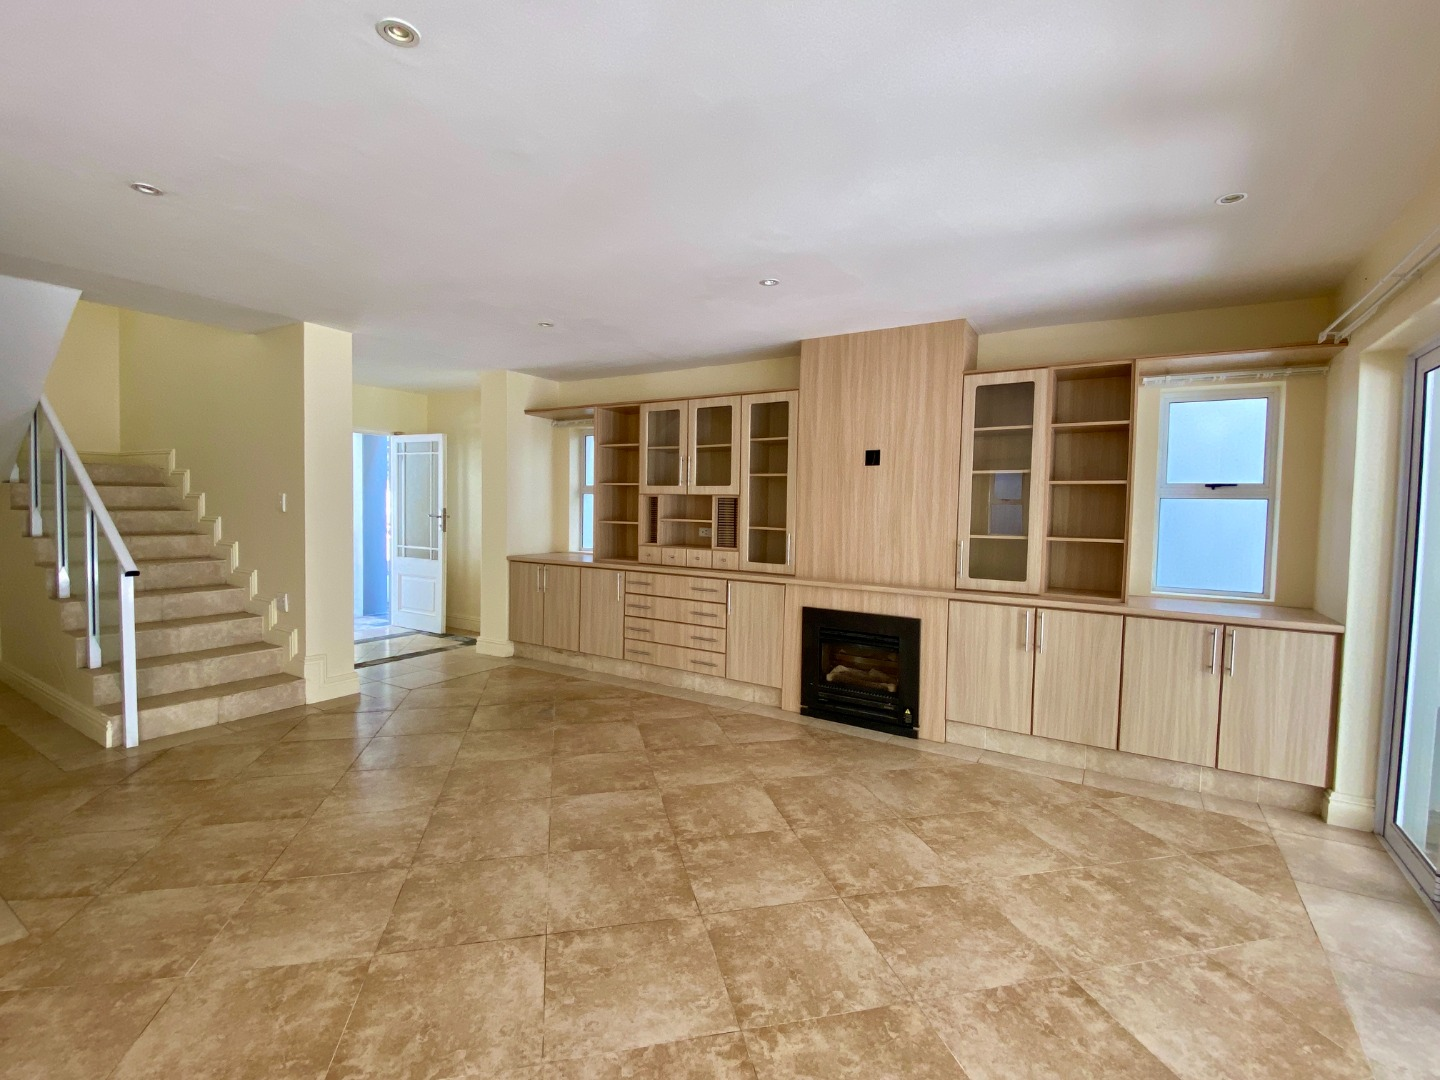 4 Bedroom House For Sale in Wilderness Central